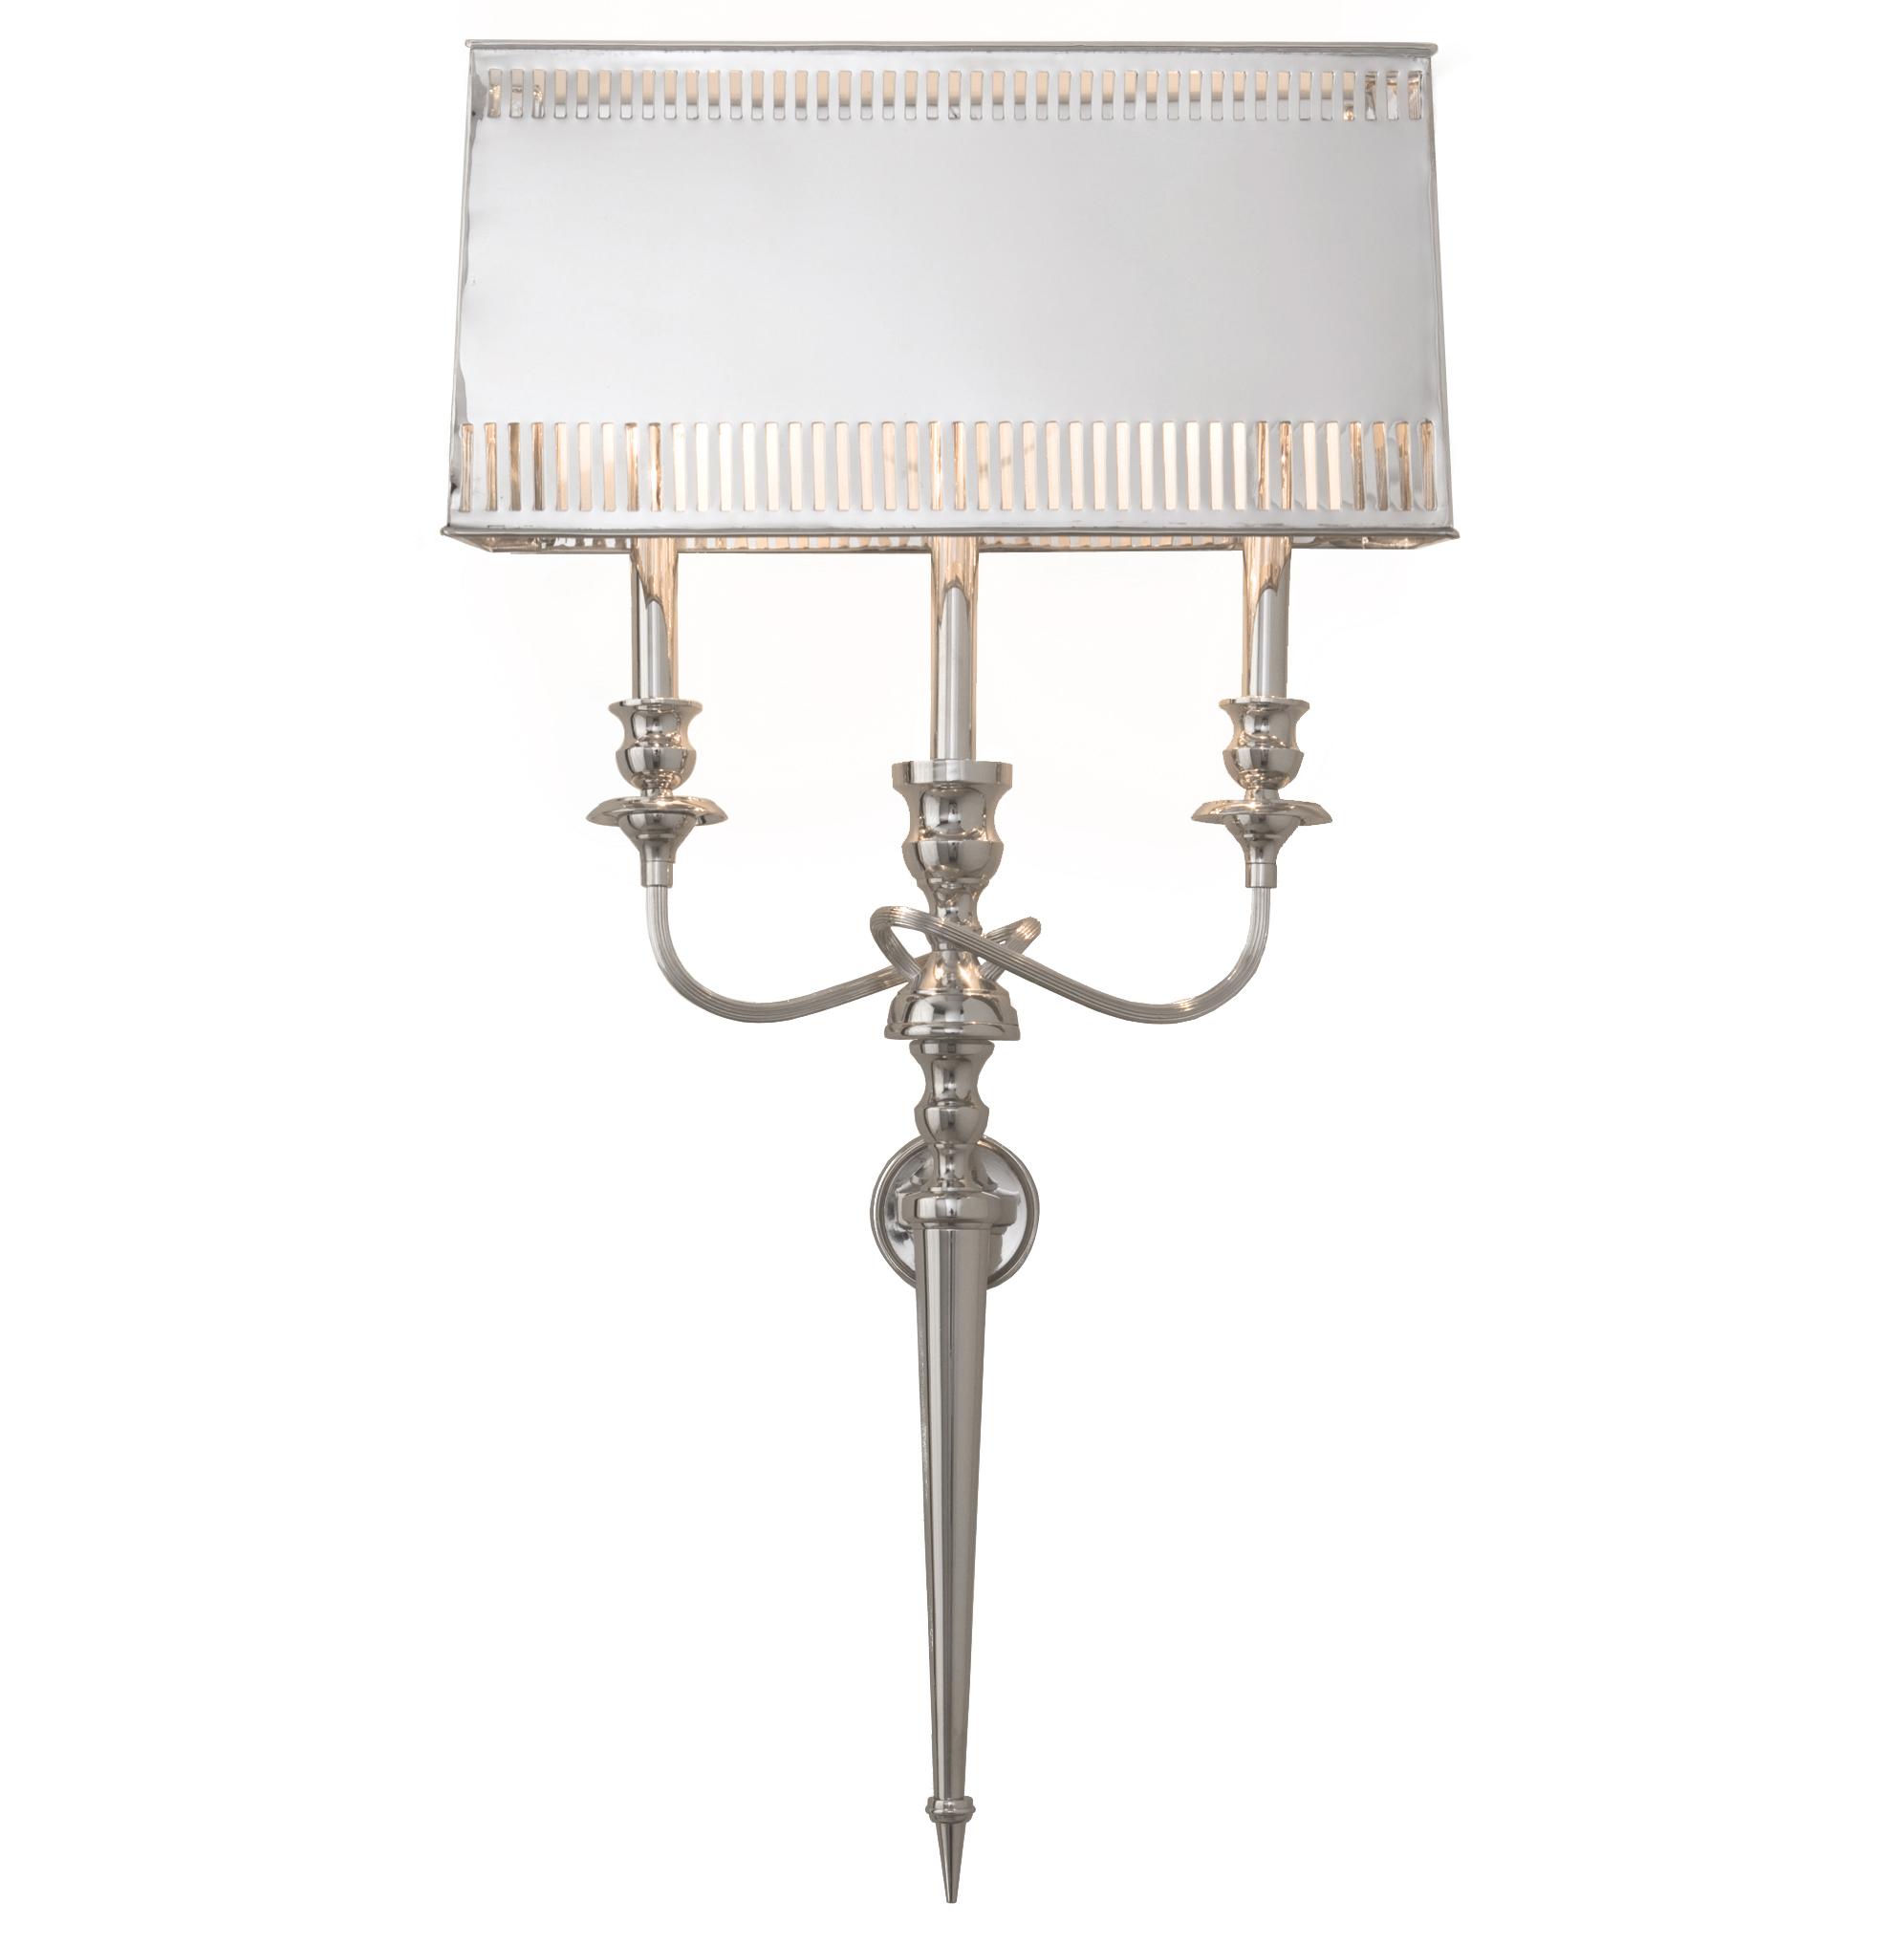 Monroe Hollywood Regency French Deco Polished Nickel Deco Style Sconce